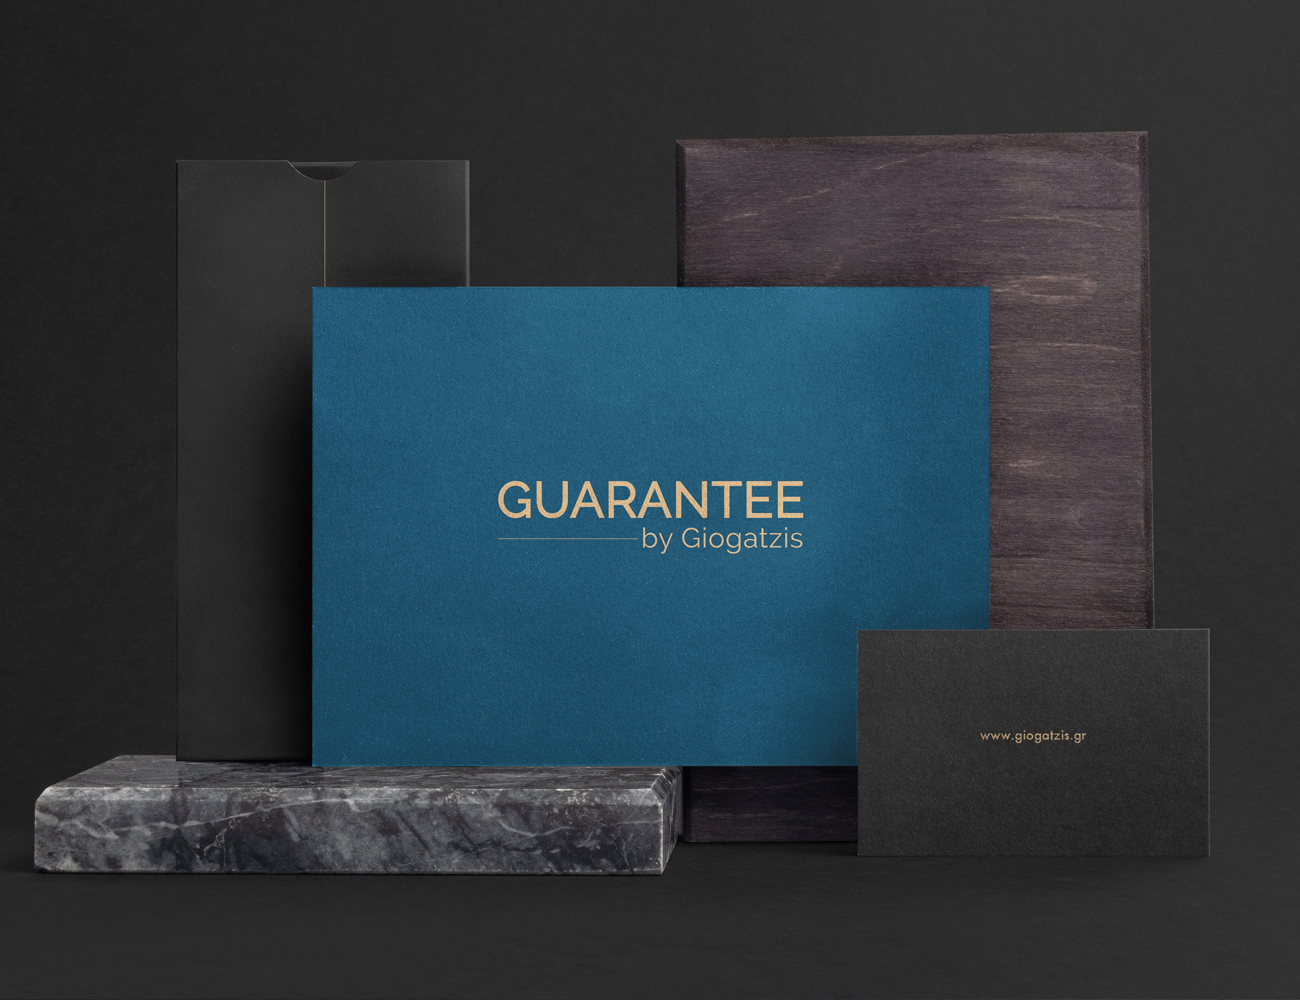 Guarantee by Giogatzis